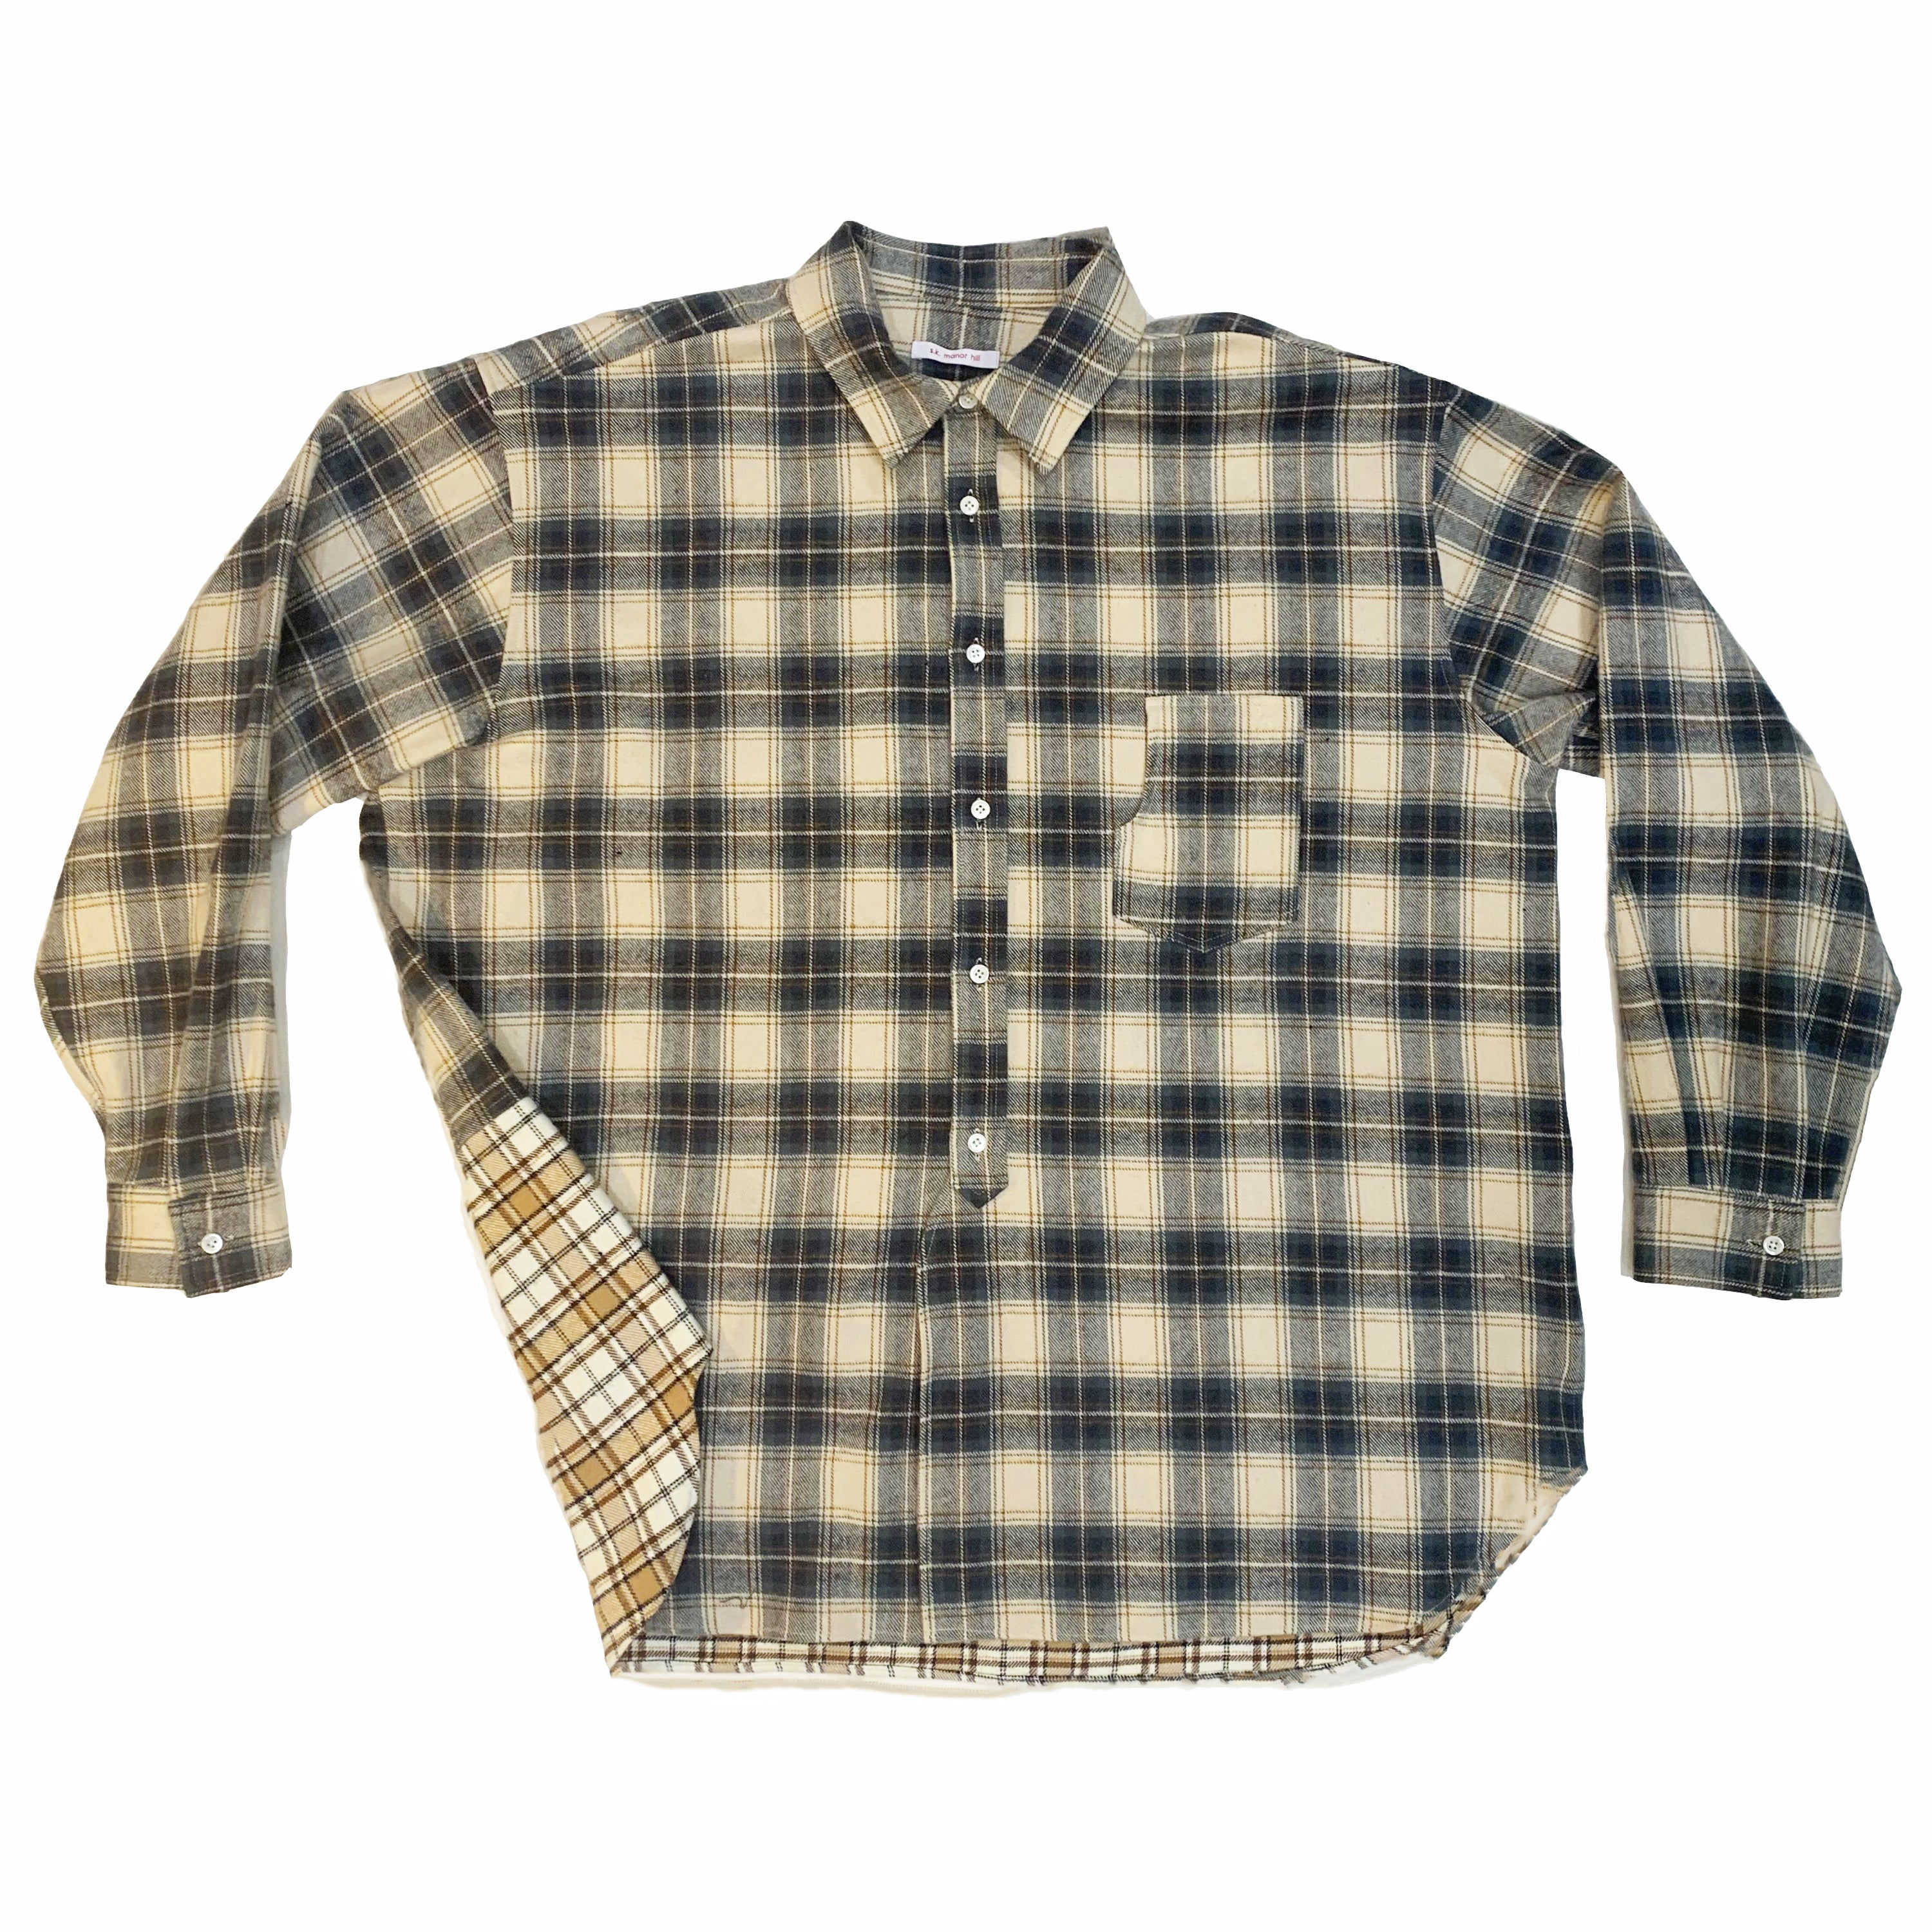 Artisan Shirt - Moss Plaid